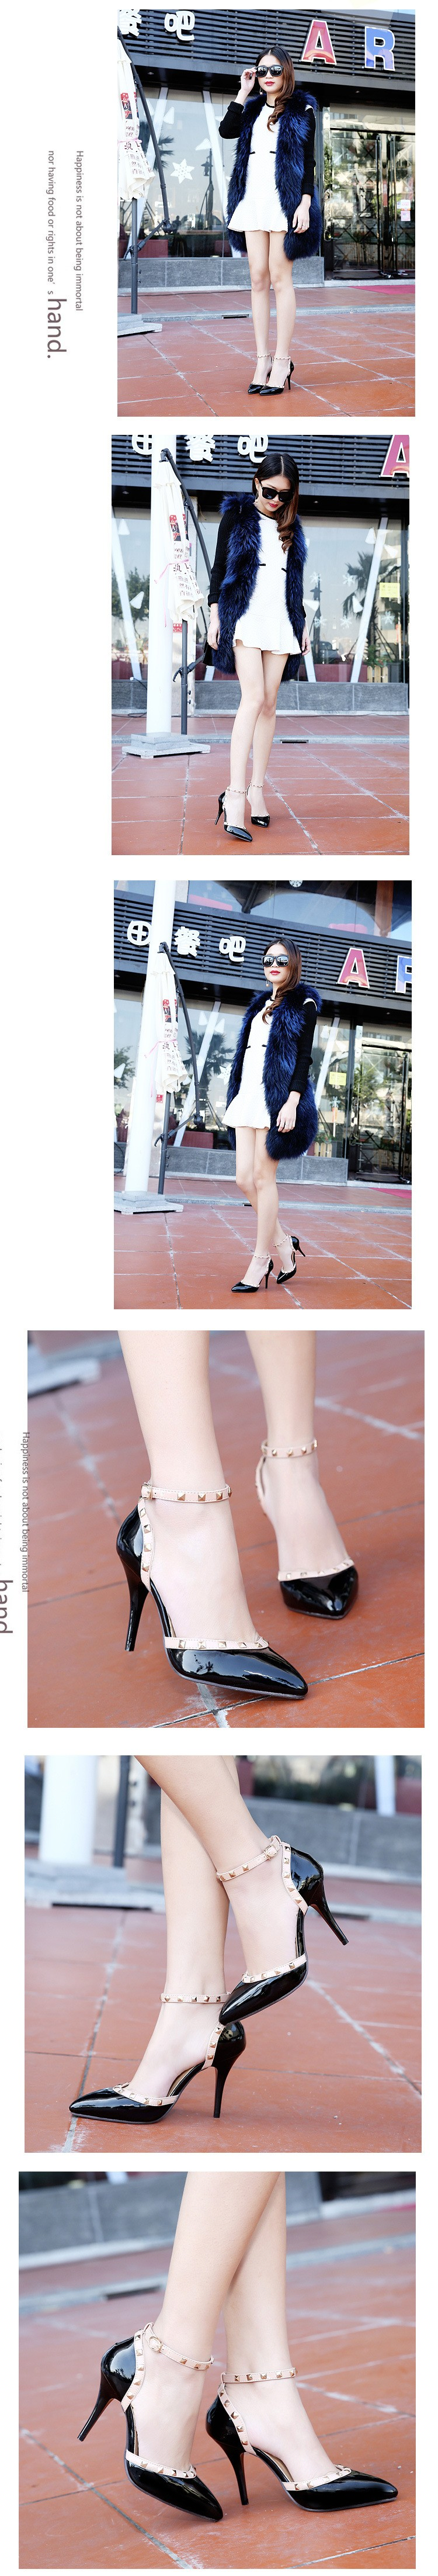 New Design Chaussure Femme Zapatos Mujer Shoes Woman Pumps High Heels Ladies Shoes Summer Shoes Pink Black Beige ZX2.5